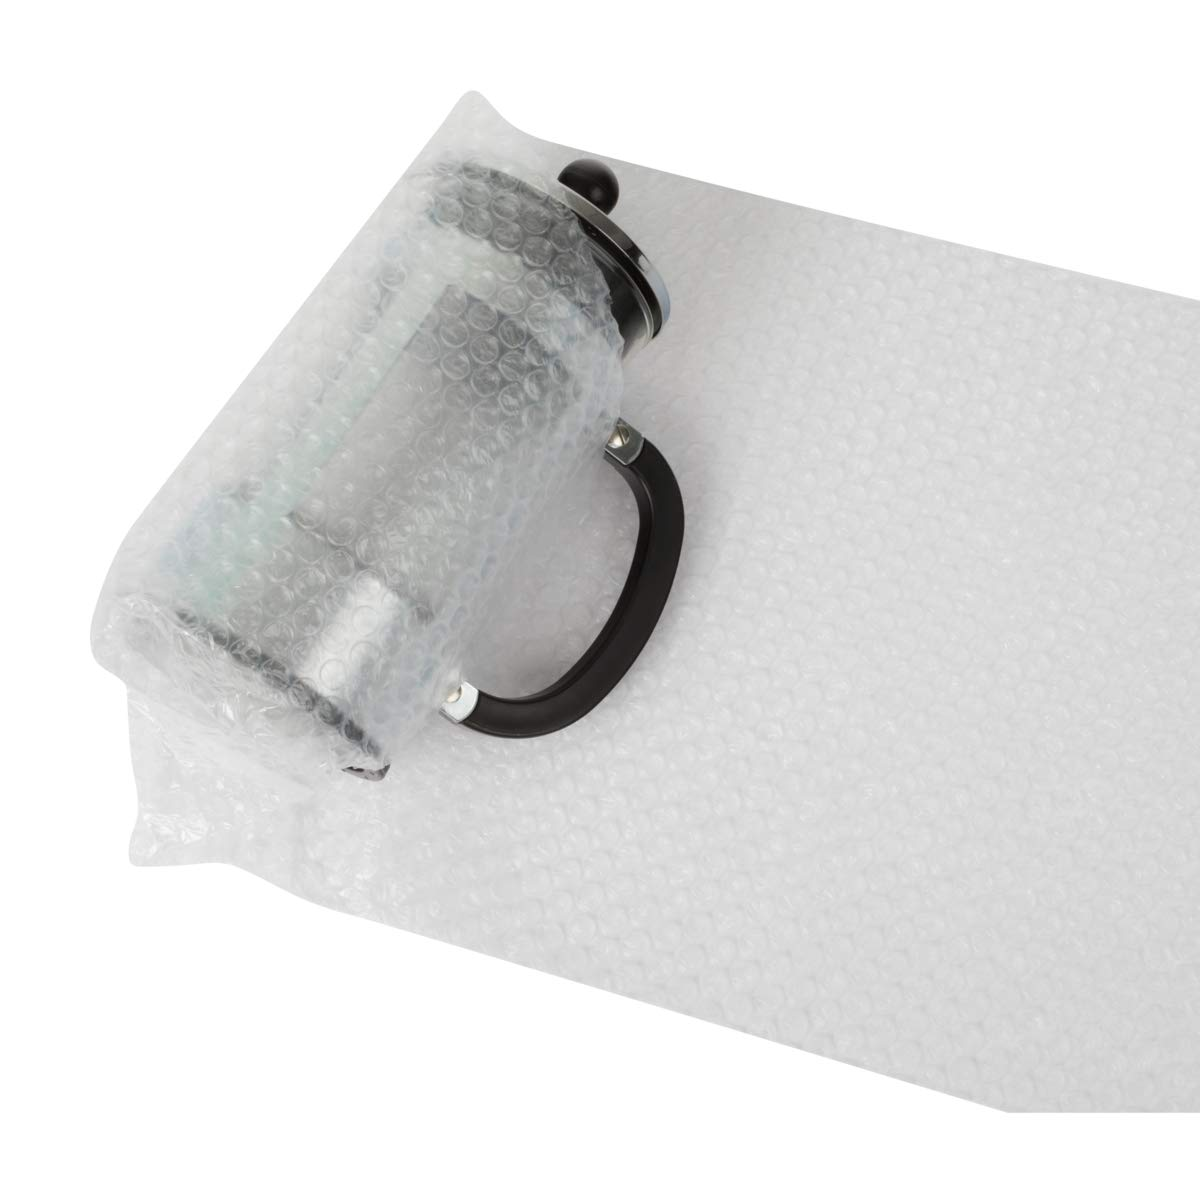 Duck Brand Bubble Wrap Roll, 3/16'' Original Bubble Cushioning, 12'' x 150', Perforated Every 12'' (284054) by Duck (Image #7)